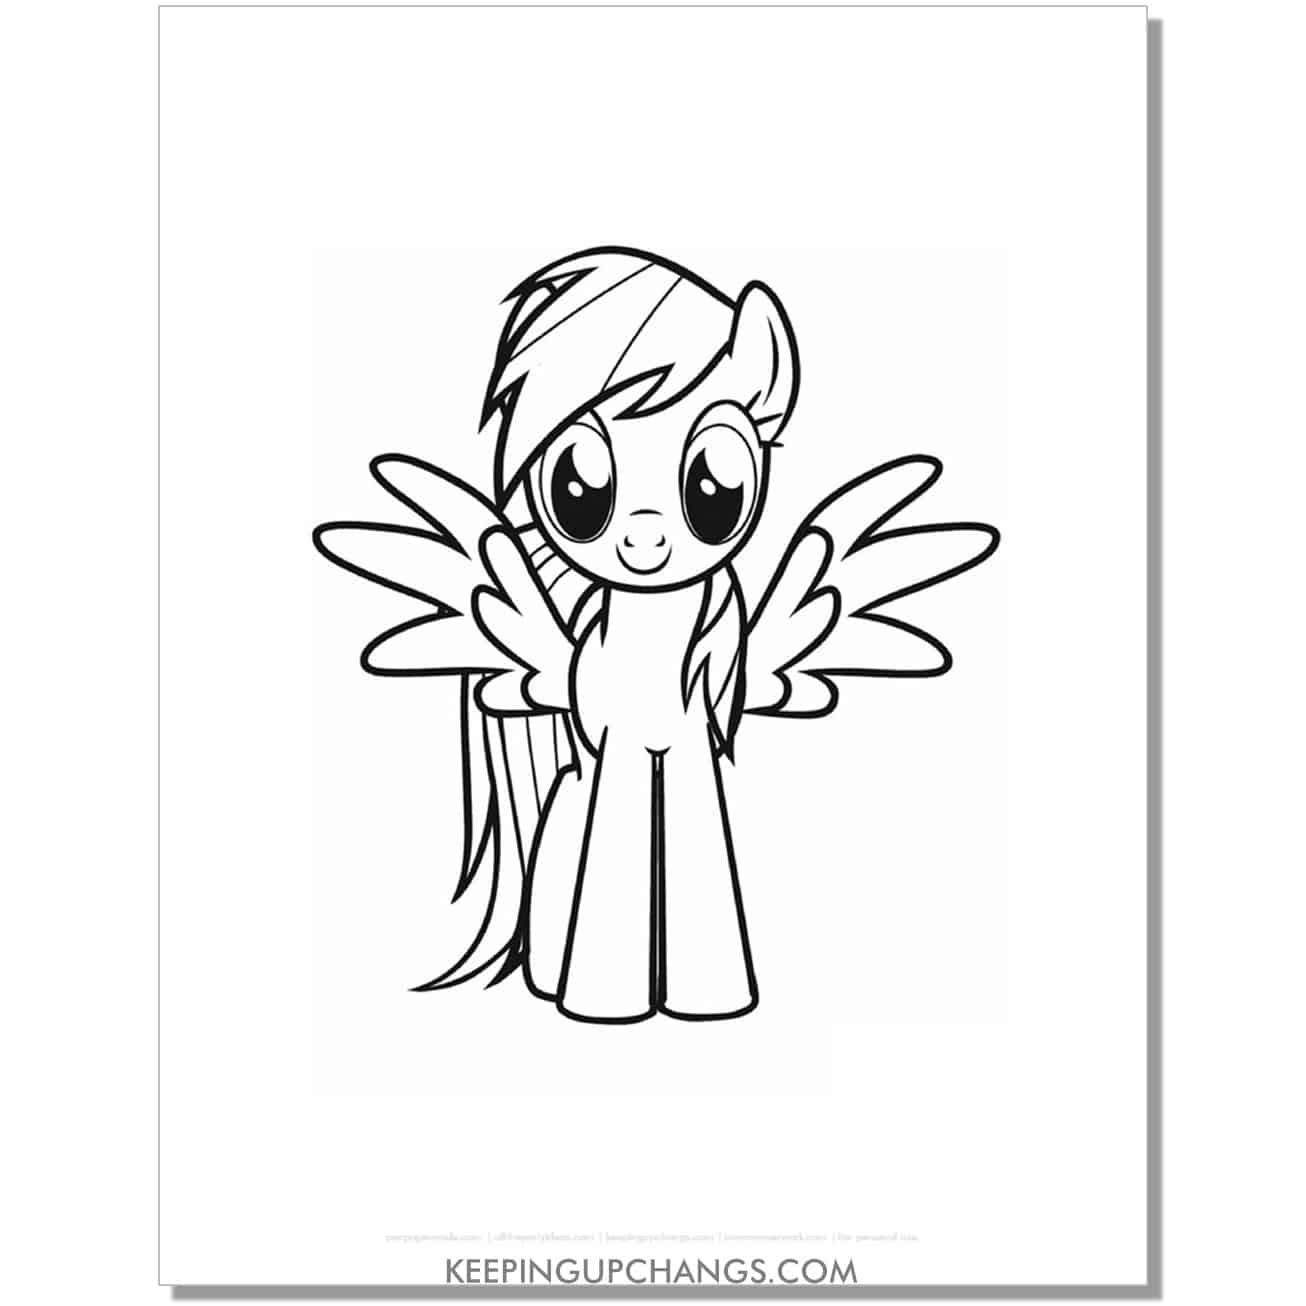 free front view rainbow dash my little pony coloring page.